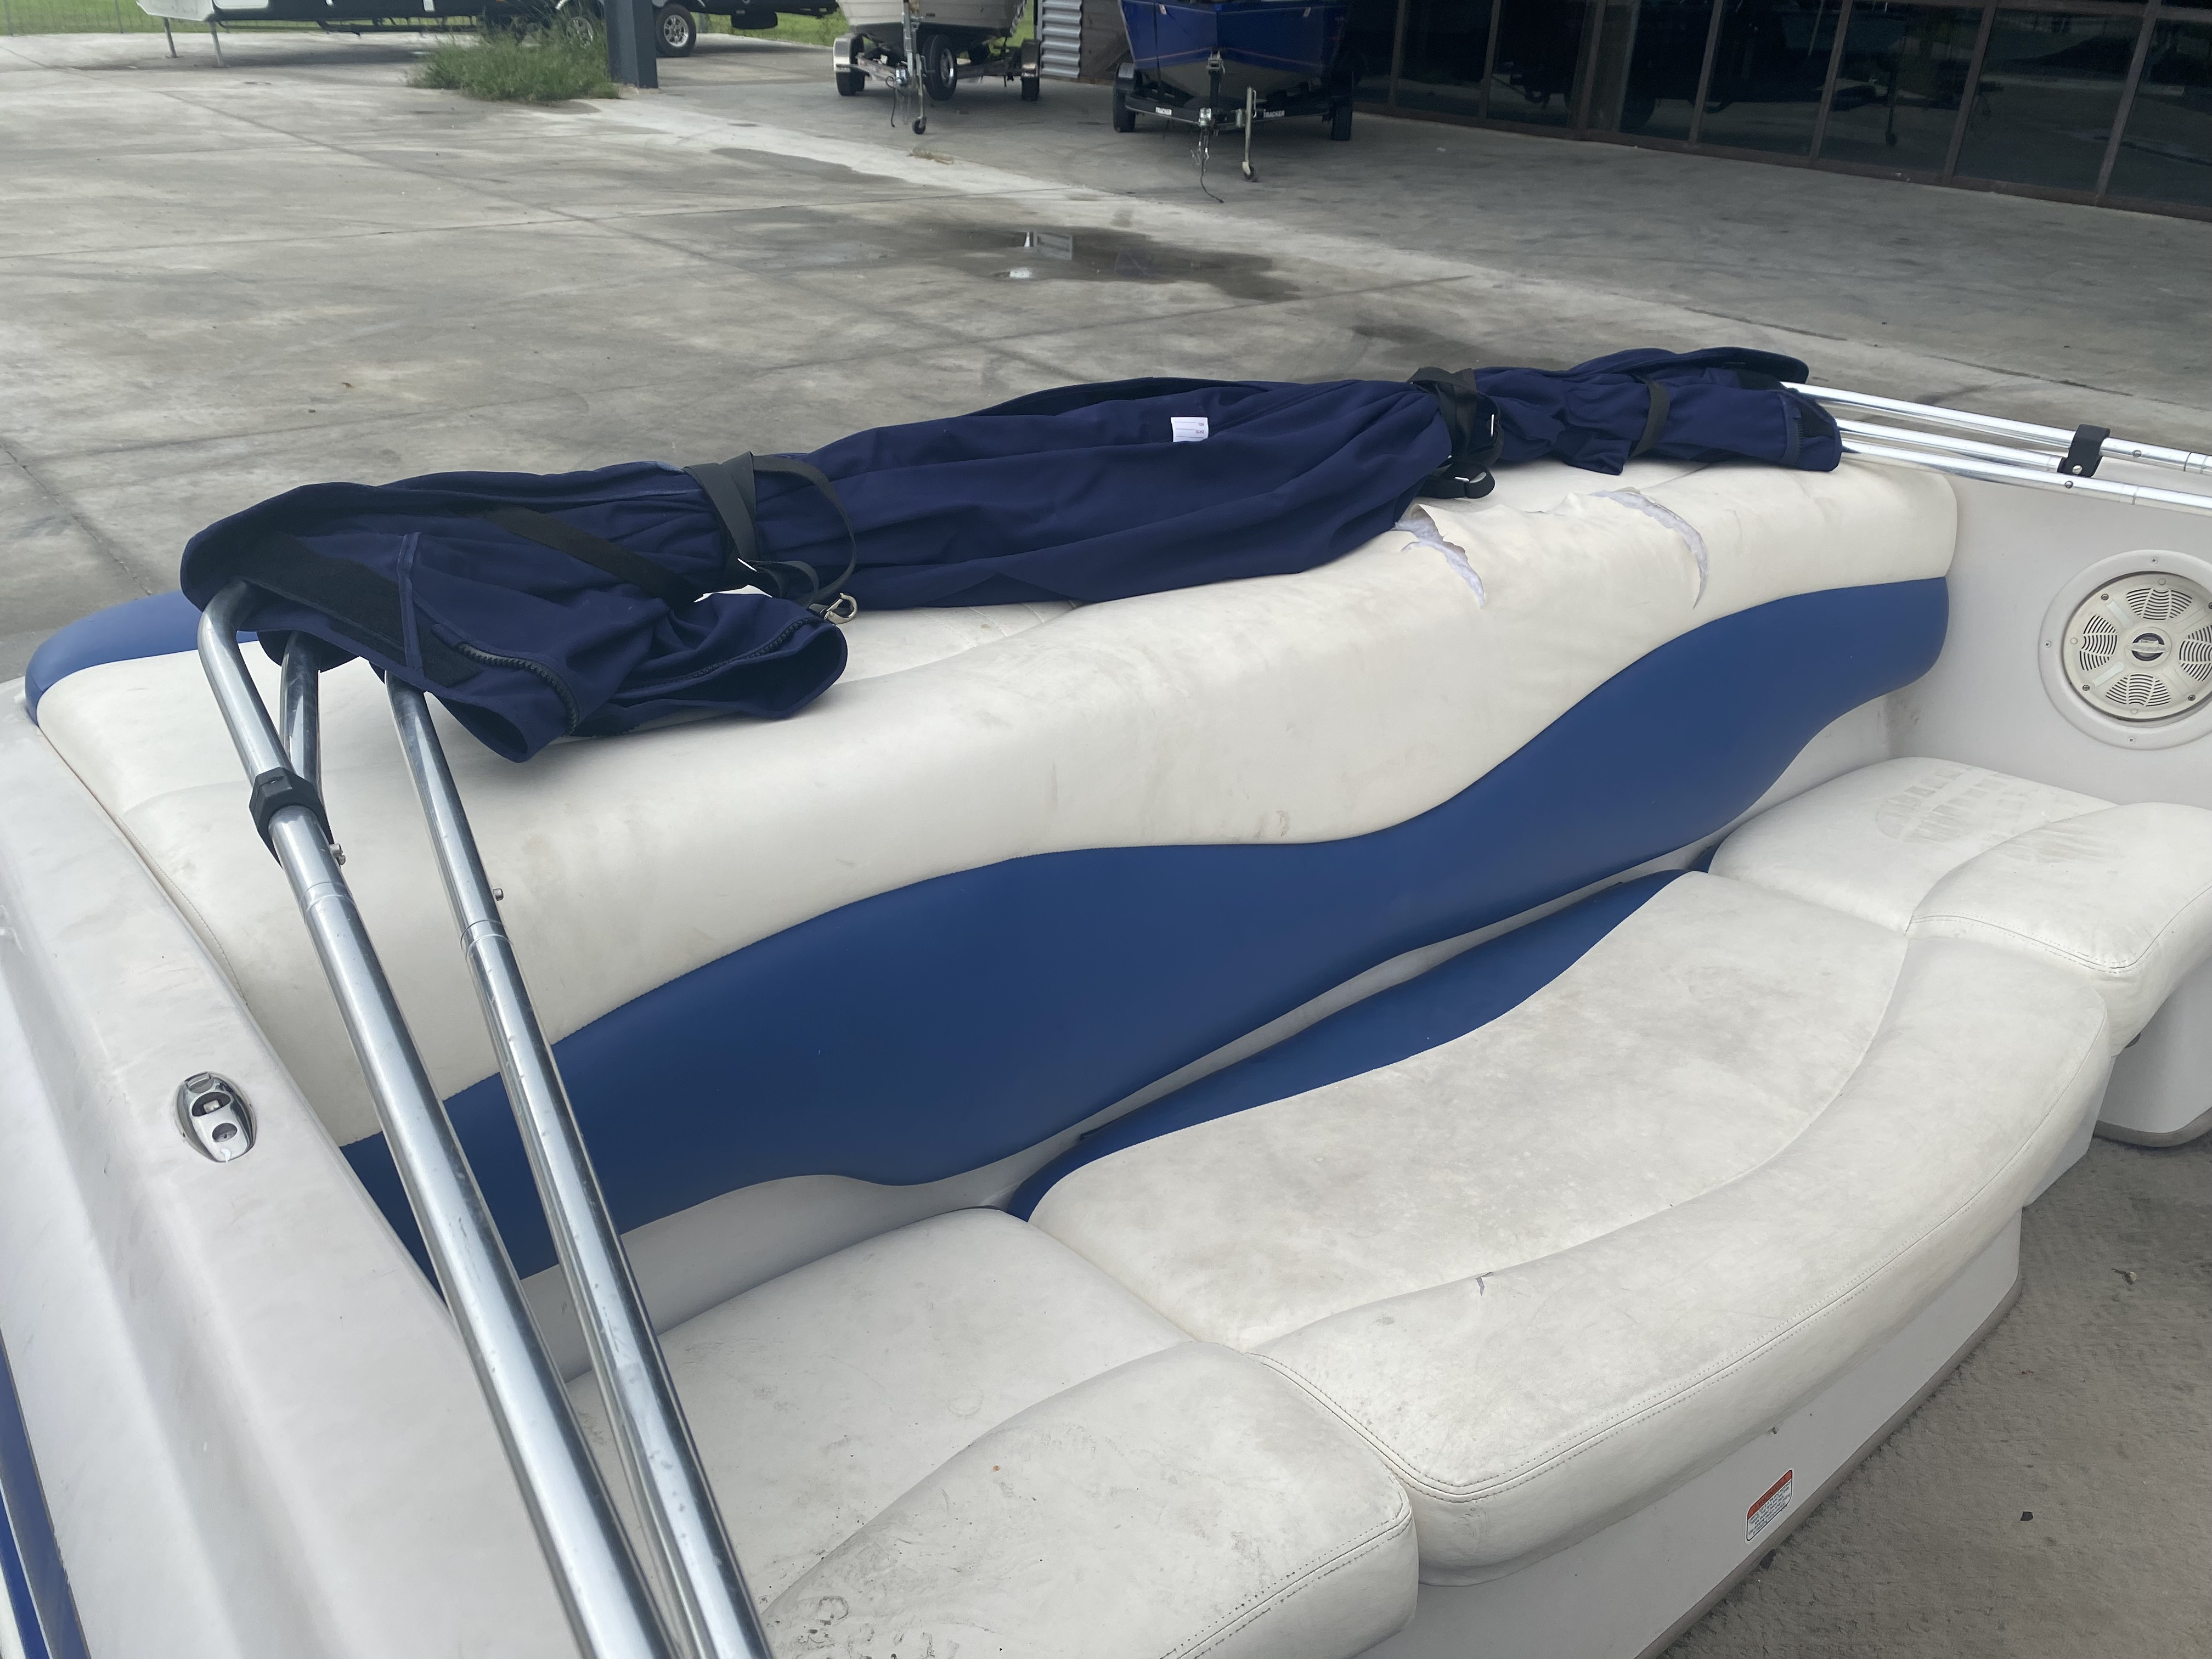 2008 Tahoe boat for sale, model of the boat is Q6 & Image # 5 of 10